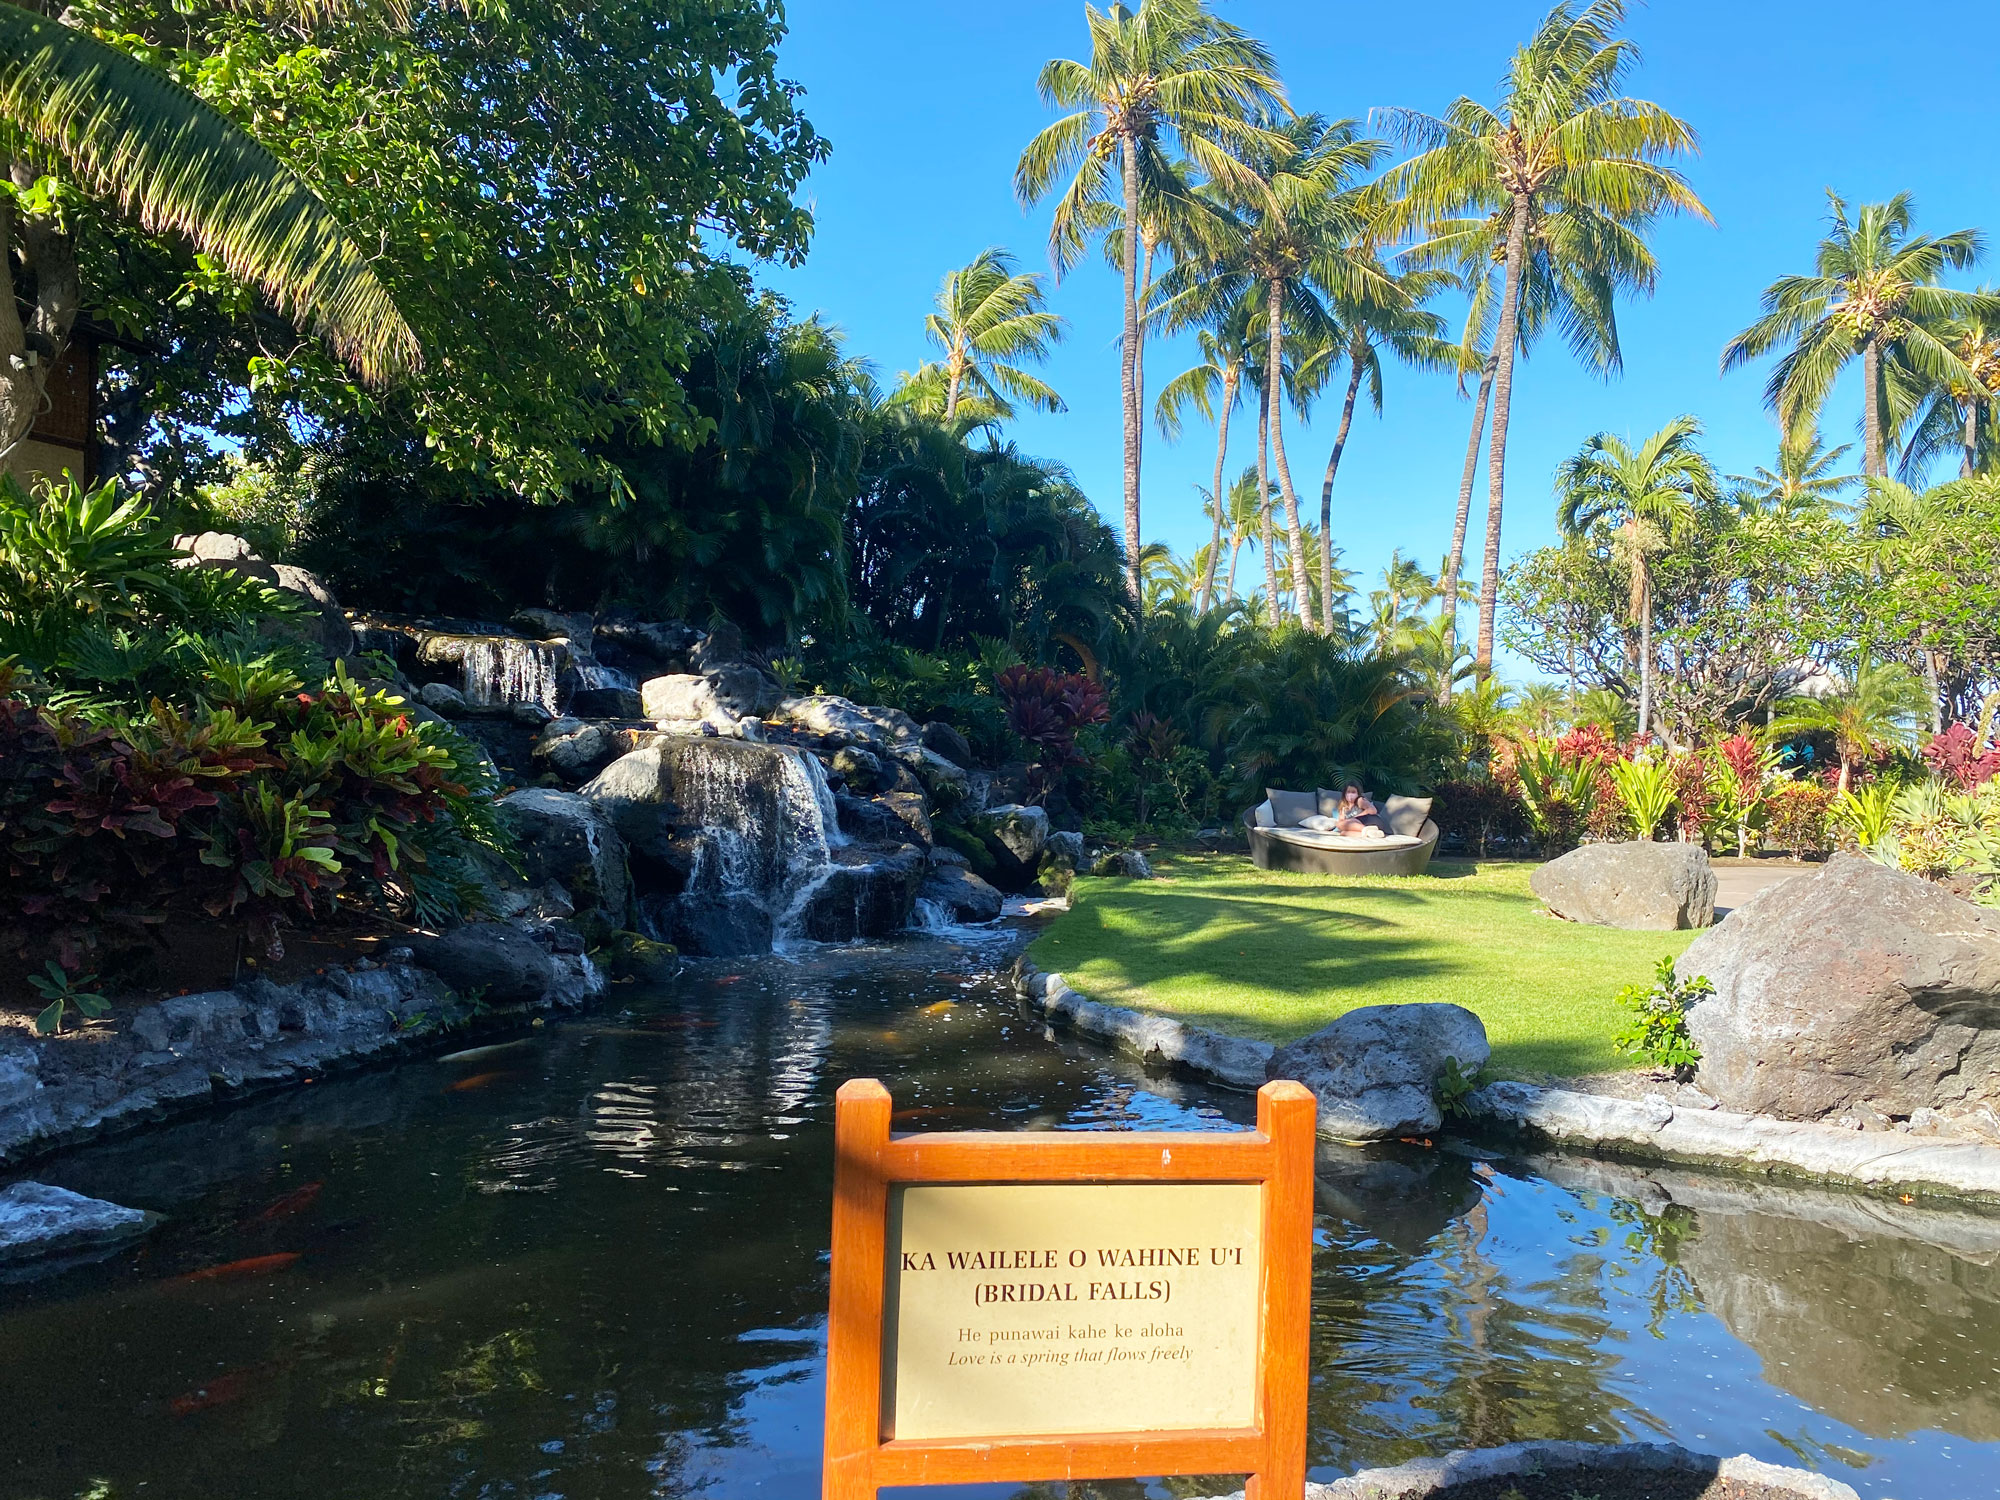 Fairmont Orchid review: serene grounds with waterfalls